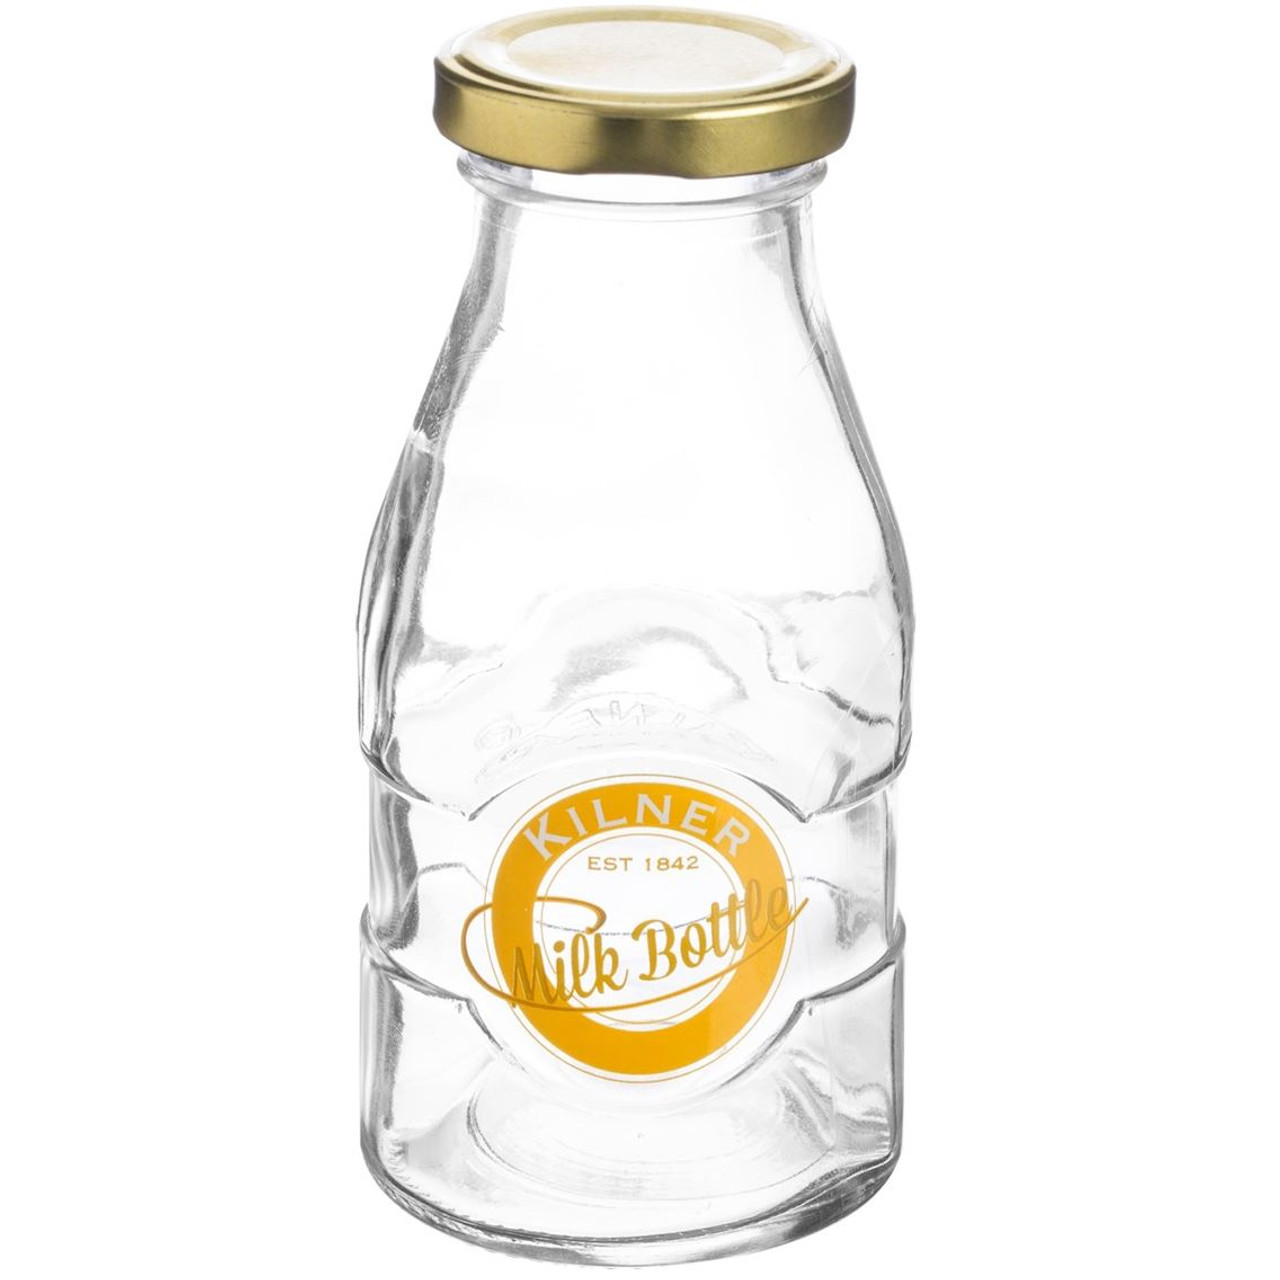 Kilner 189ml Milk Bottle